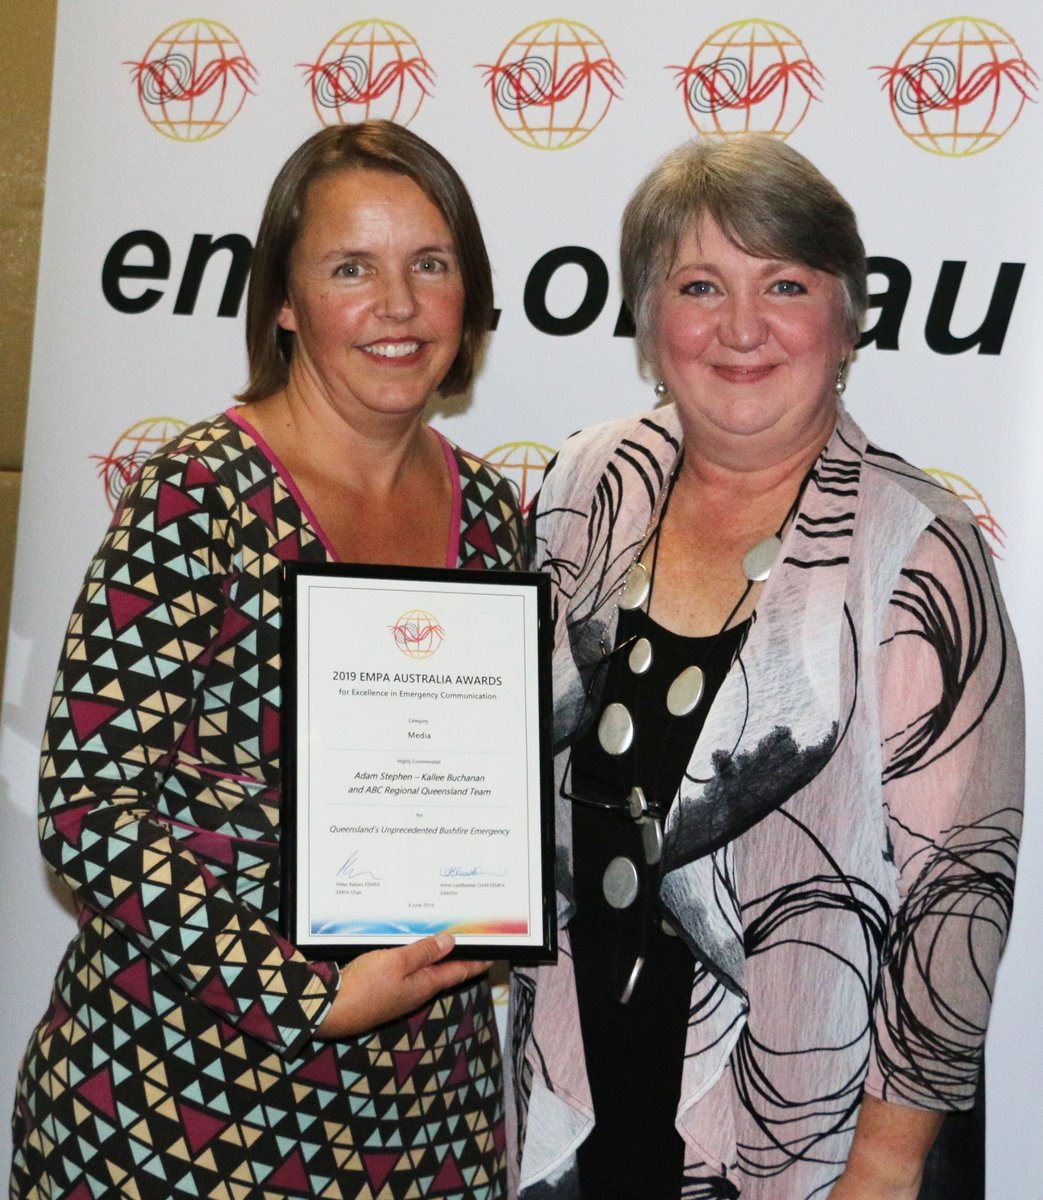 Sascha Rundle, ABC Manager of Emergency Broadcasting, with Anne Leadbeater